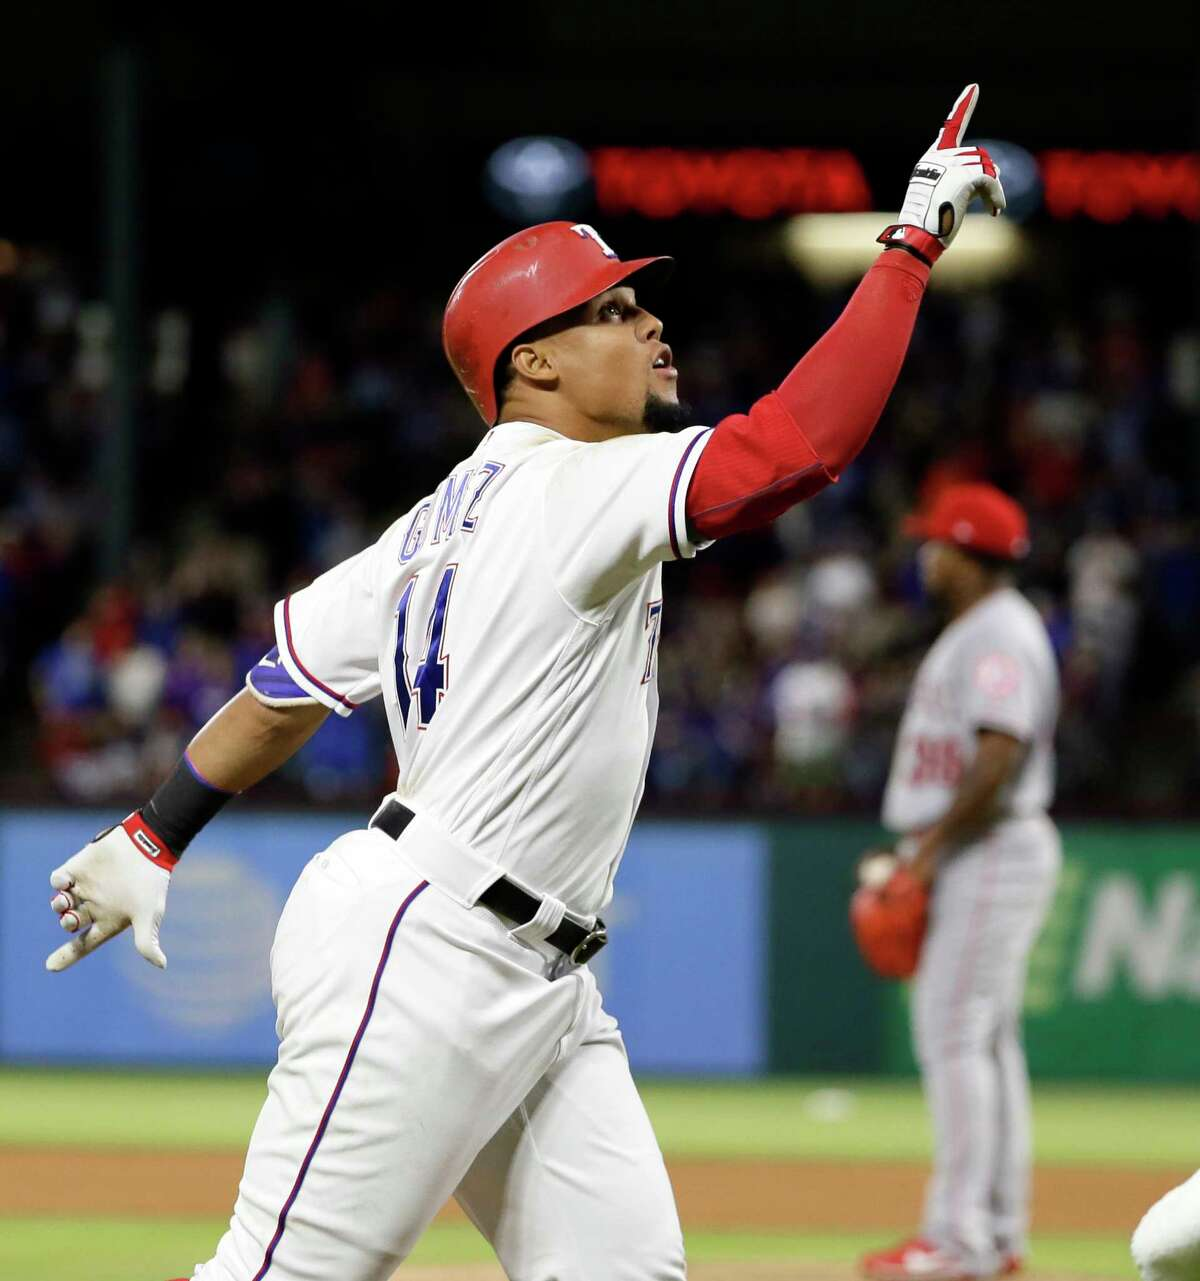 Texas Rangers' Carlos Gomez points skyward as he approaches the plate after hitting a two-run home run off of Los Angeles Angels relief pitcher Jose Valdez, rear, during the seventh inning of a baseball game in Arlington, Texas, Saturday, April 29, 2017. Gomez hit for the cycle. (AP Photo/Tony Gutierrez) ORG XMIT: ARL117